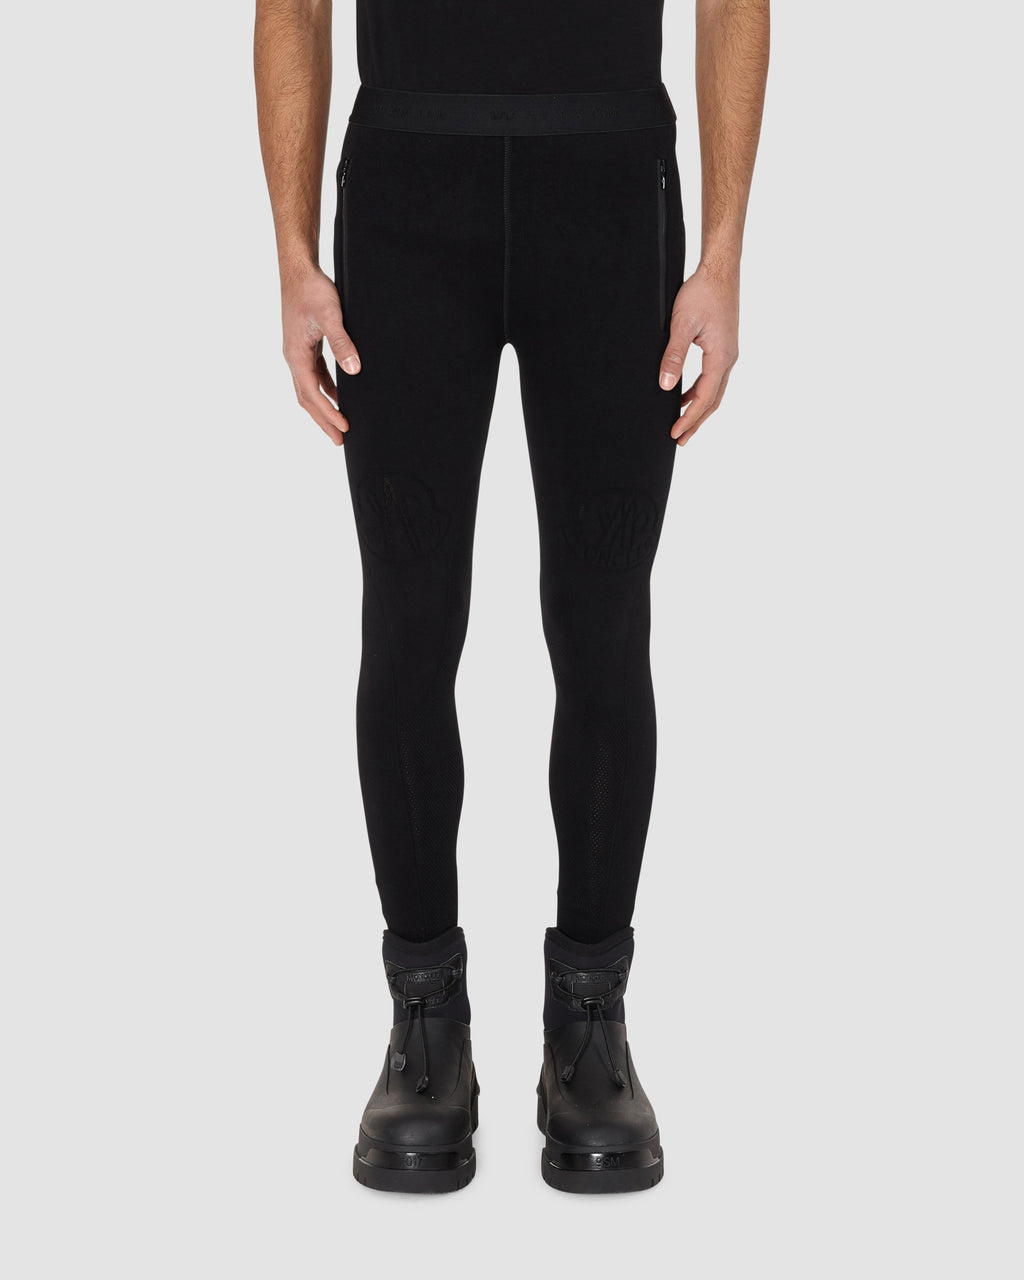 1017 ALYX 9SM | MONCLER TROUSERS | Pants | BLACK, Google Shopping, Man, Moncler, PANTS, S20, Trousers